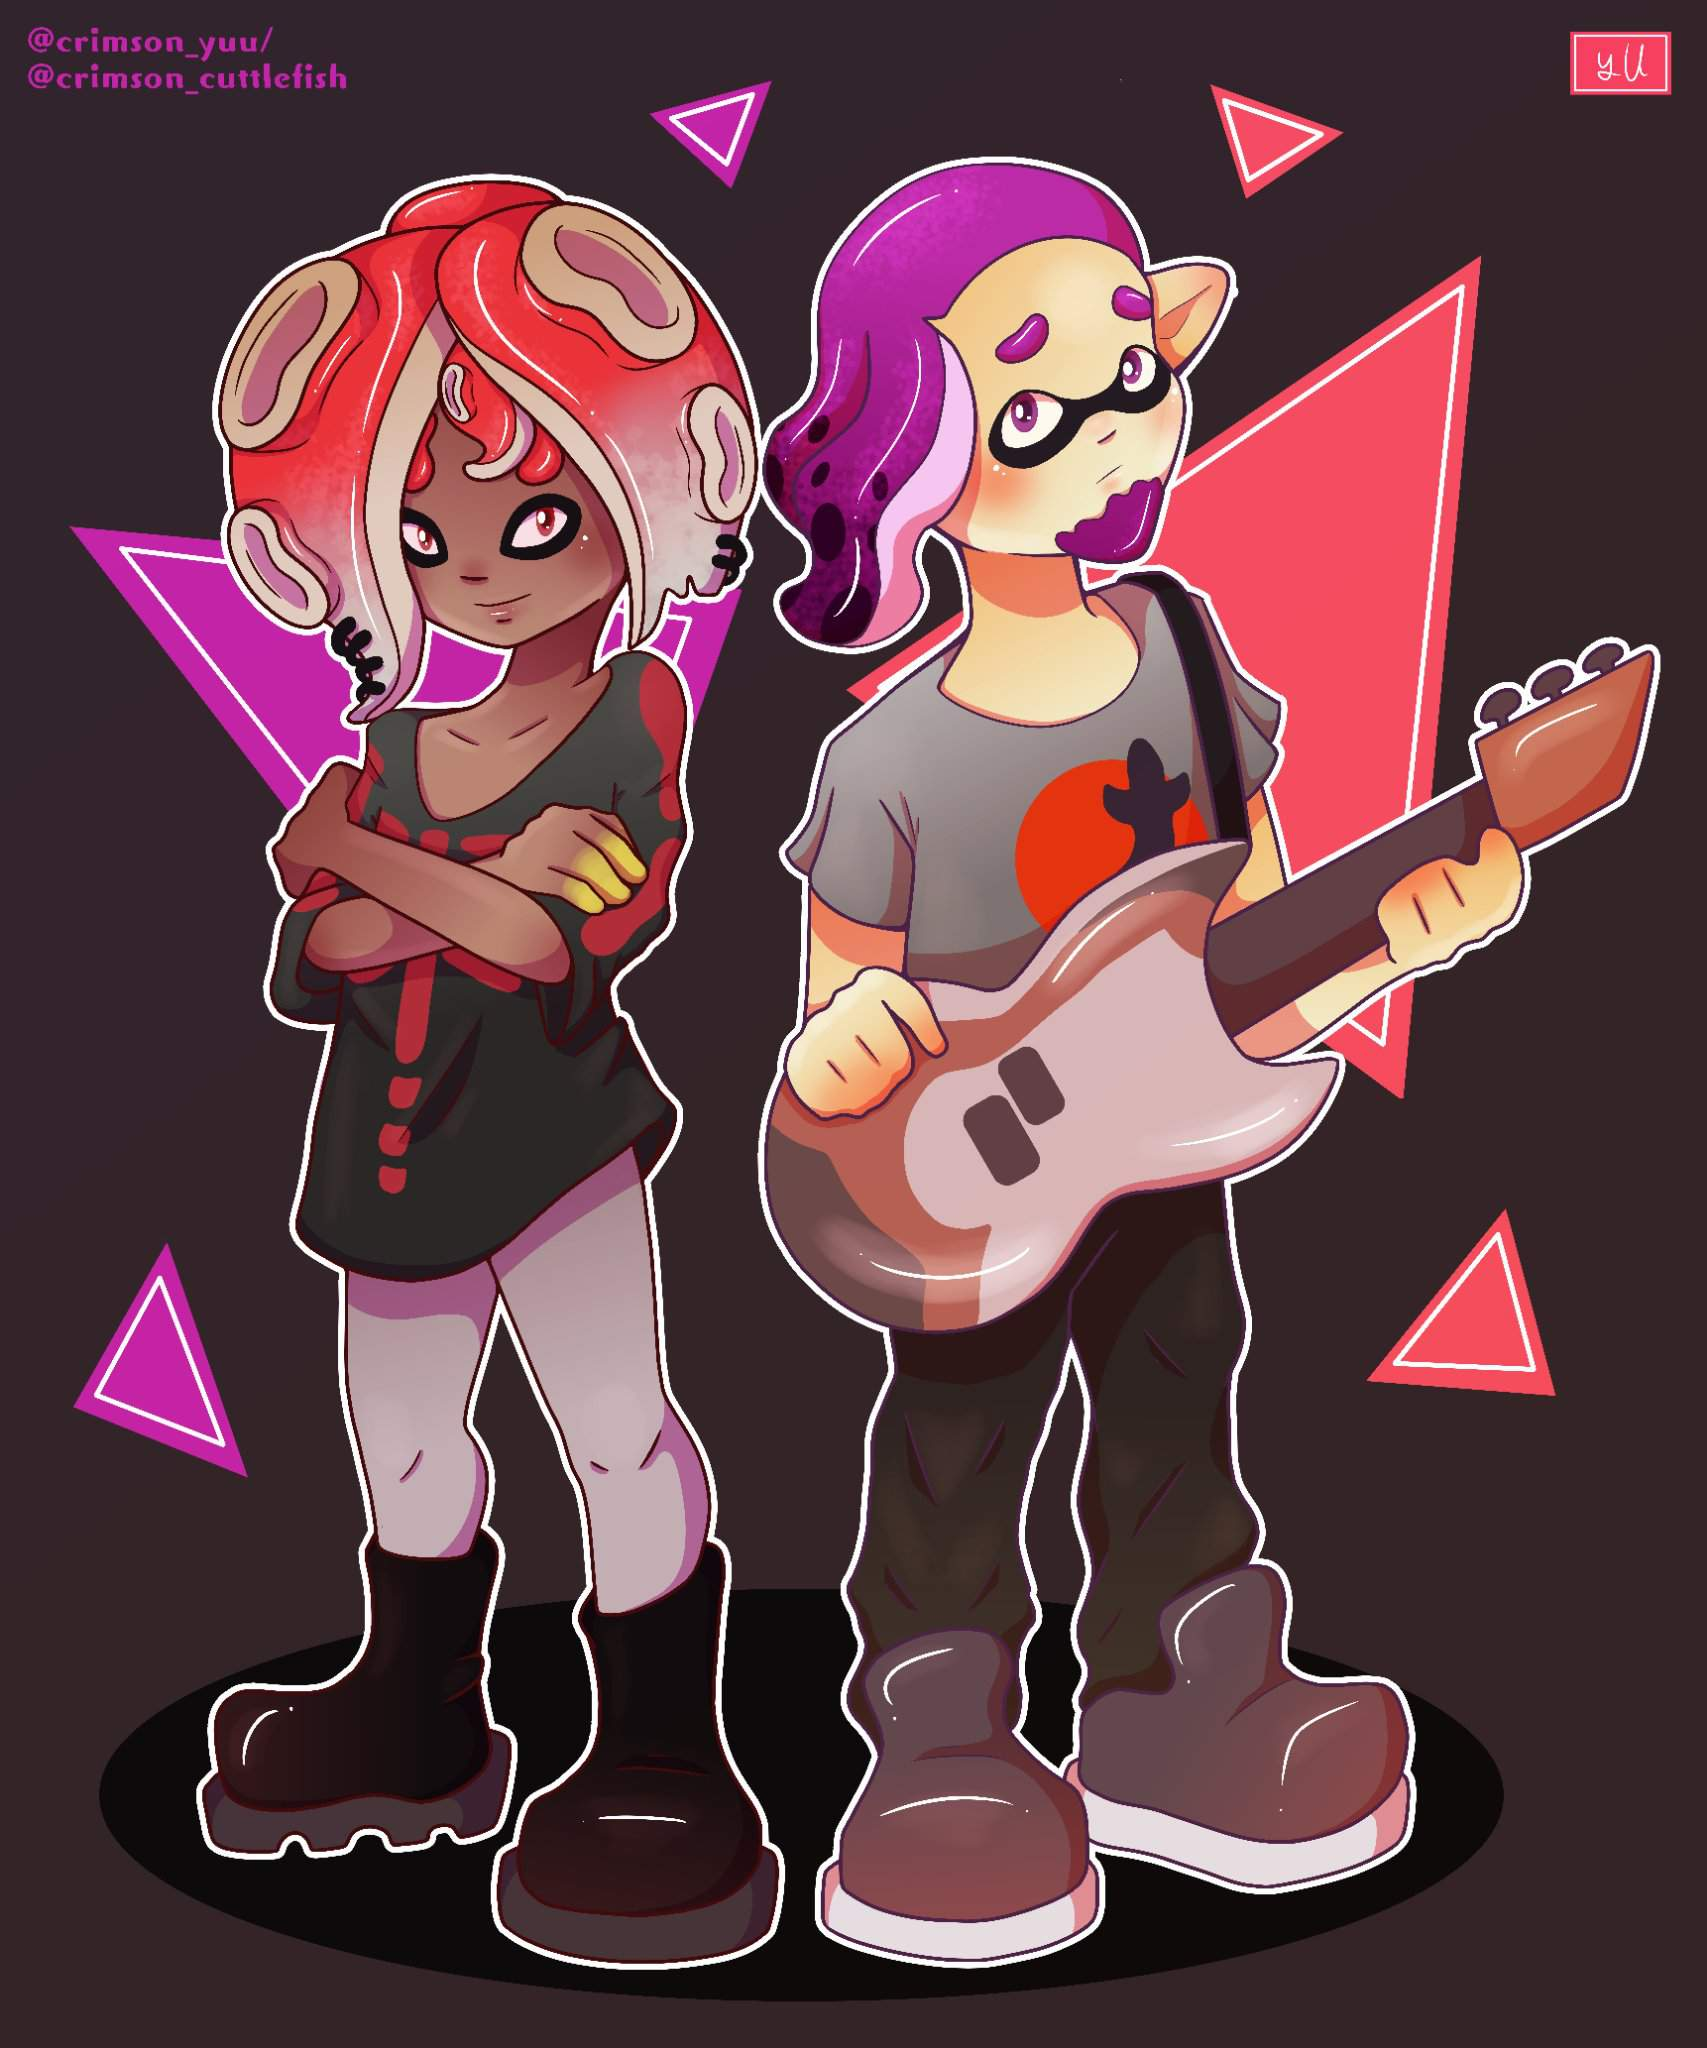 Diss-Pair (yes them again)+Splatoon band discord server | Splatoon2